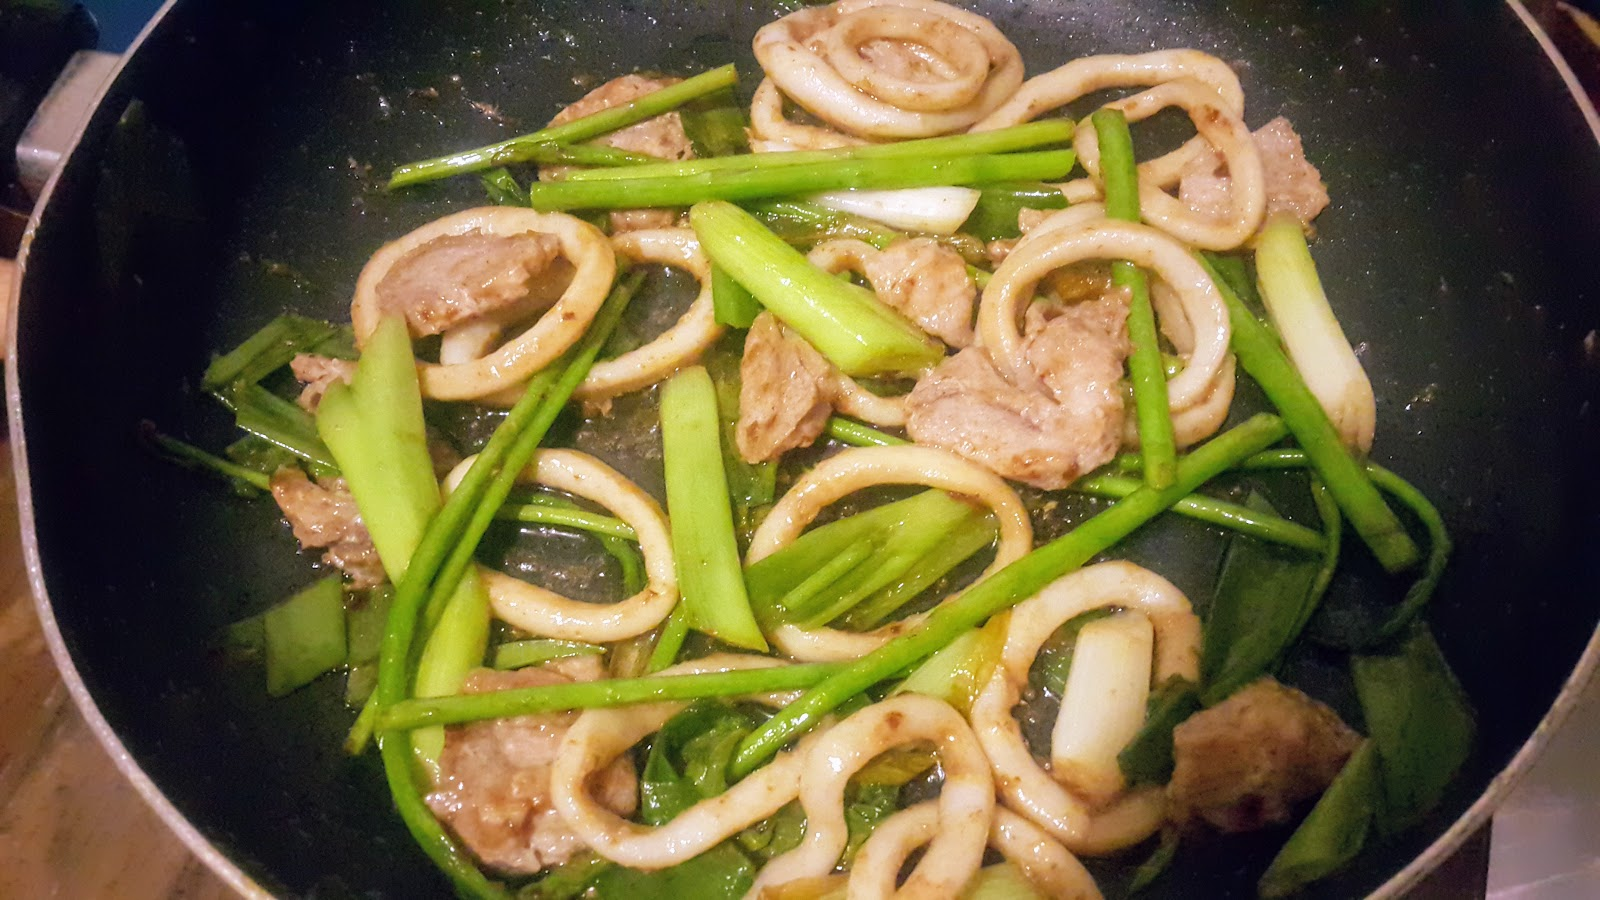 Stir fry calamares or calamari cooked with oil in a frying pan